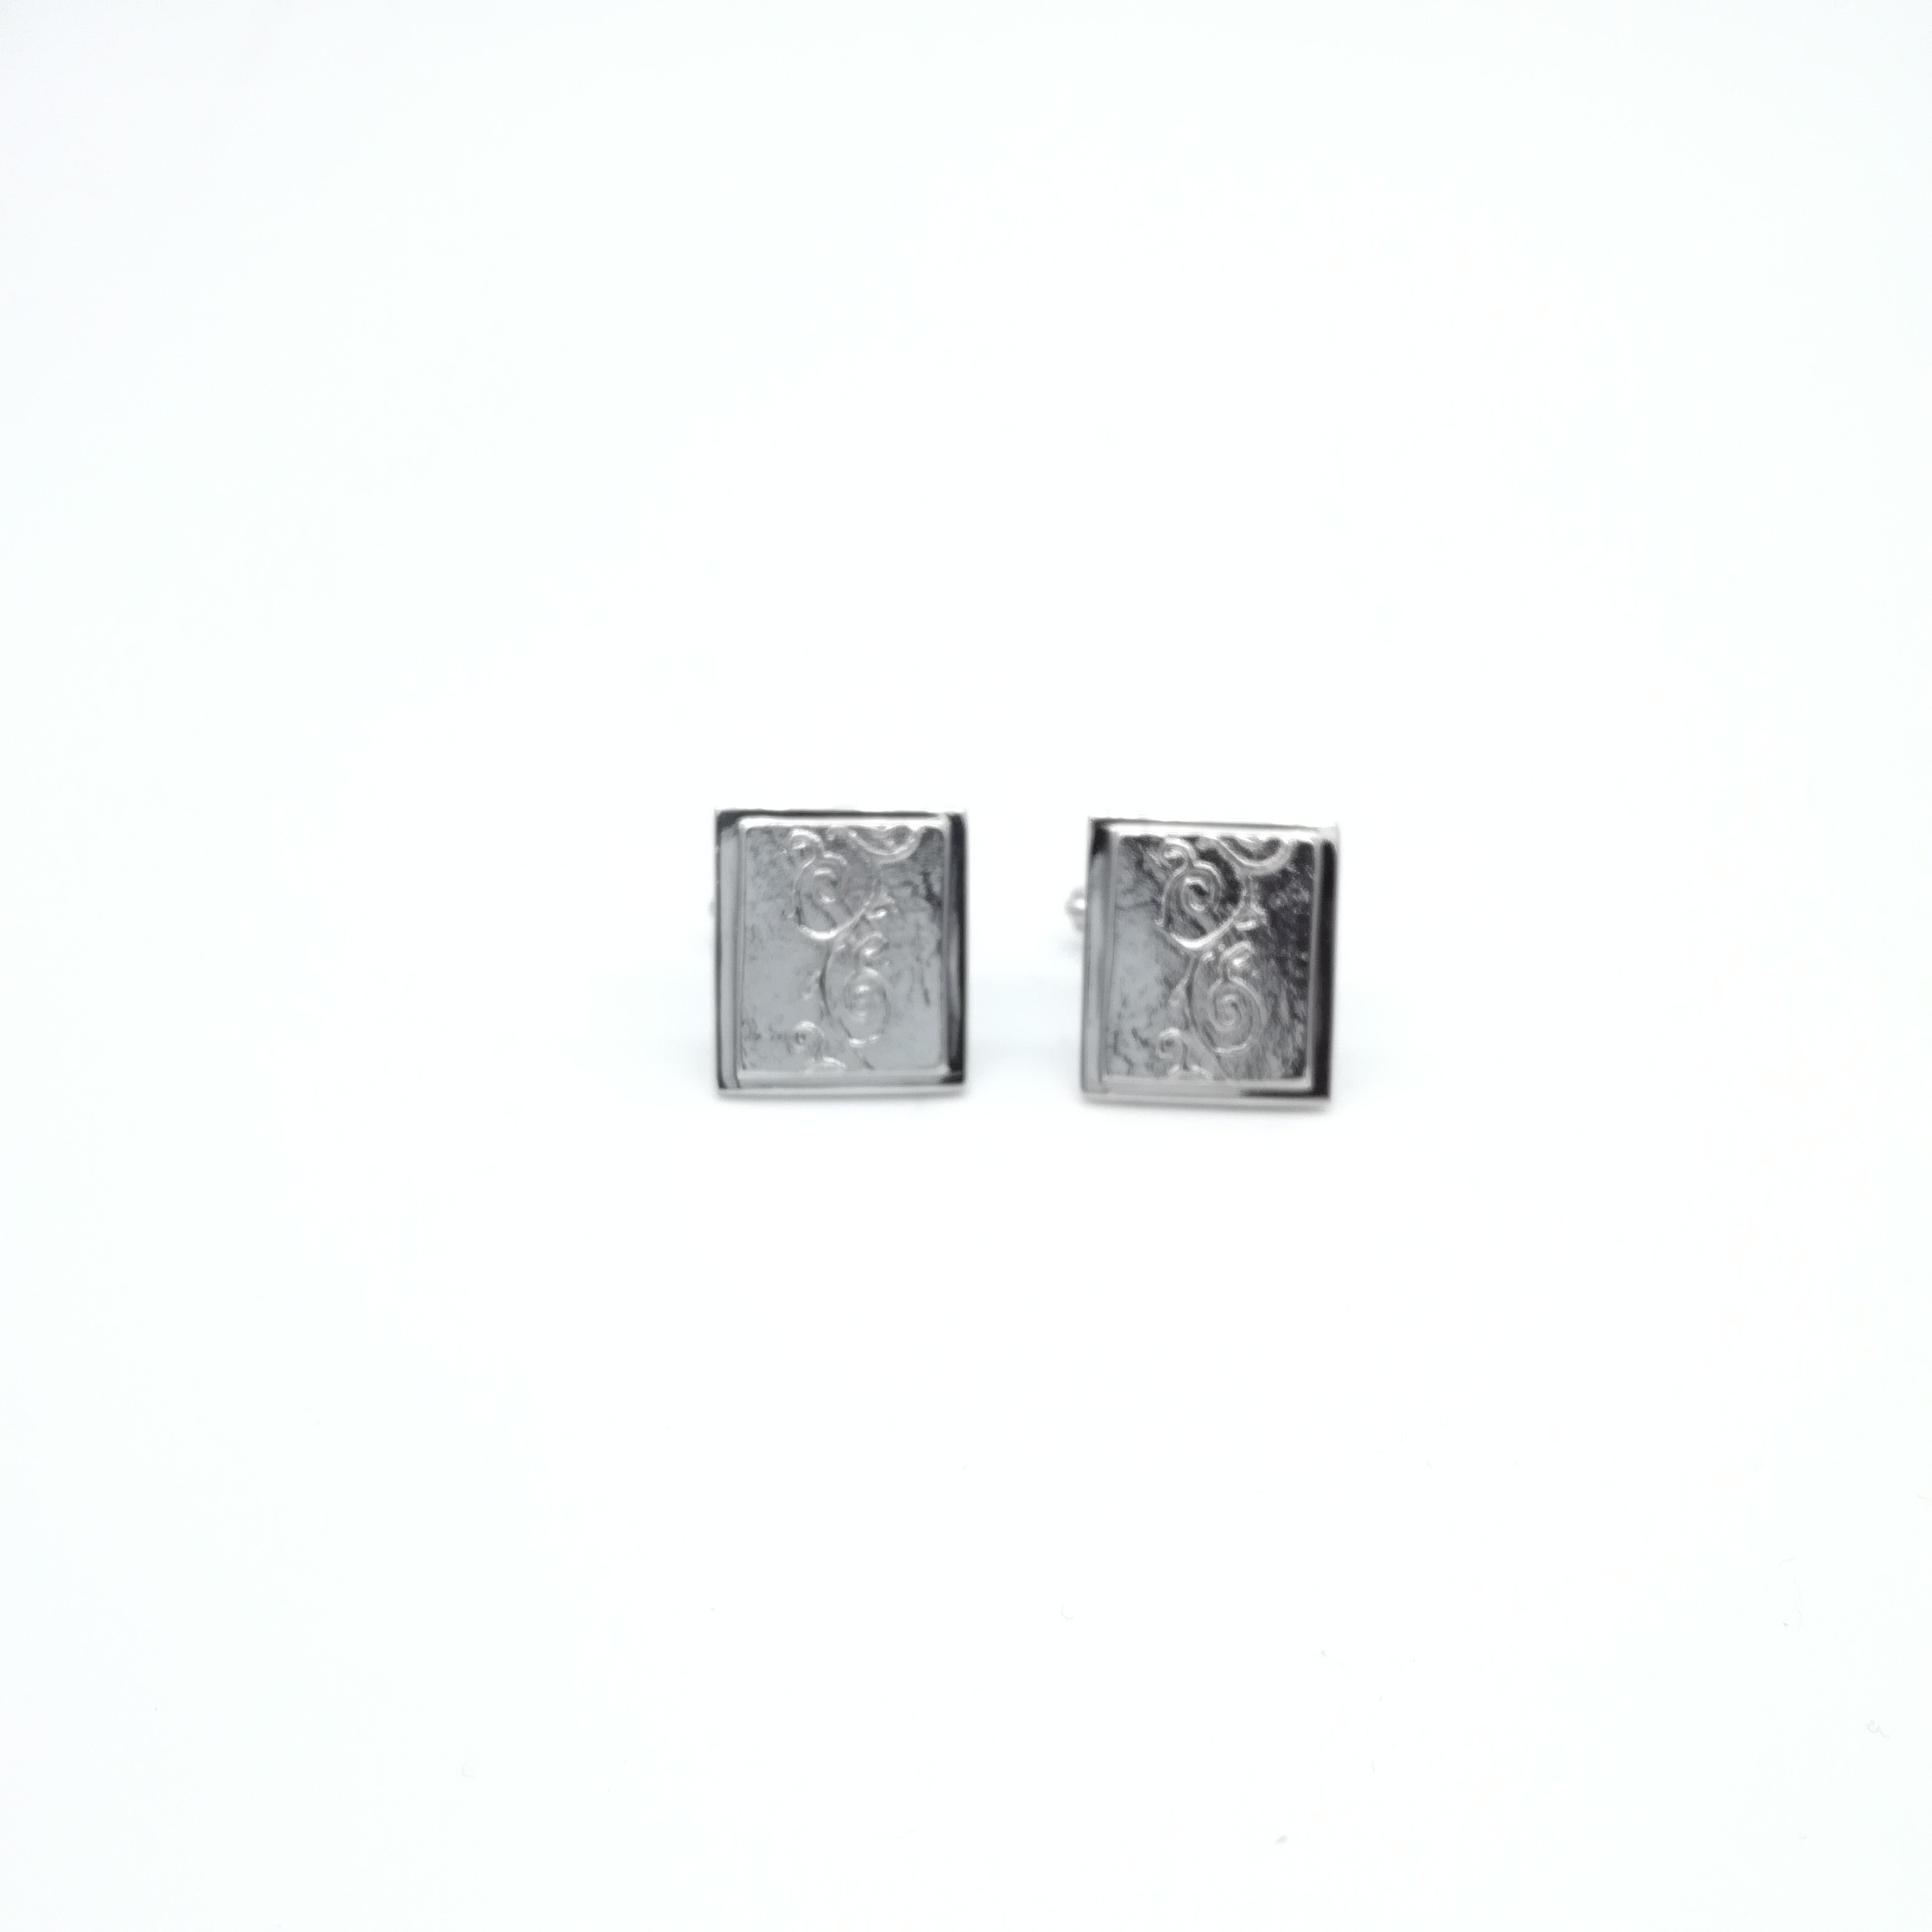 Silver cuff links 925 rhodium plated